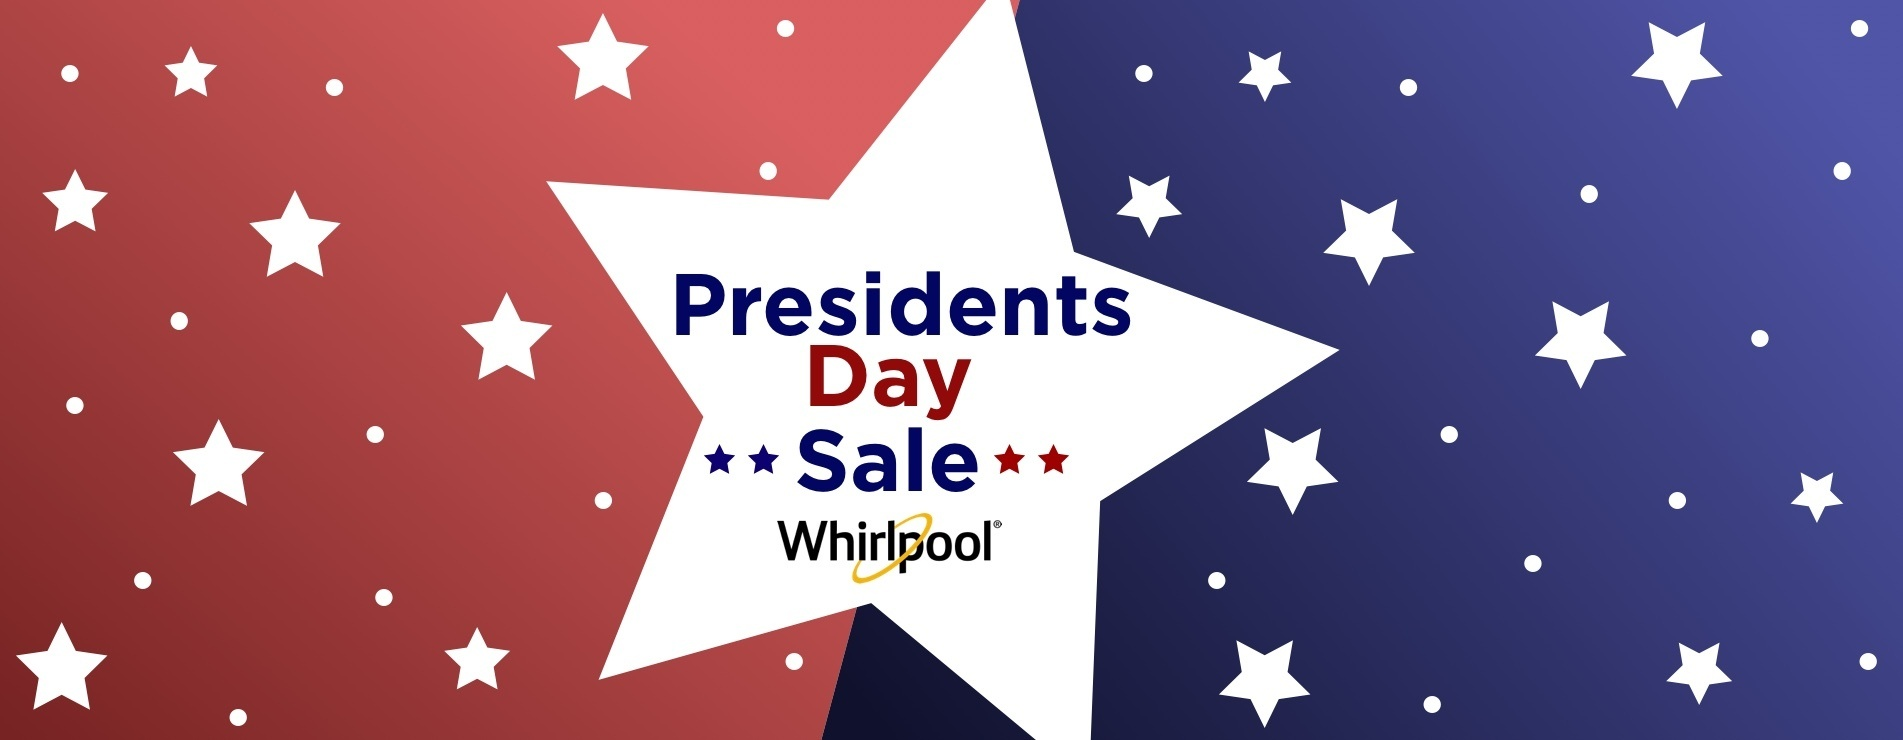 Whirlpool-Presidents-Day-2021